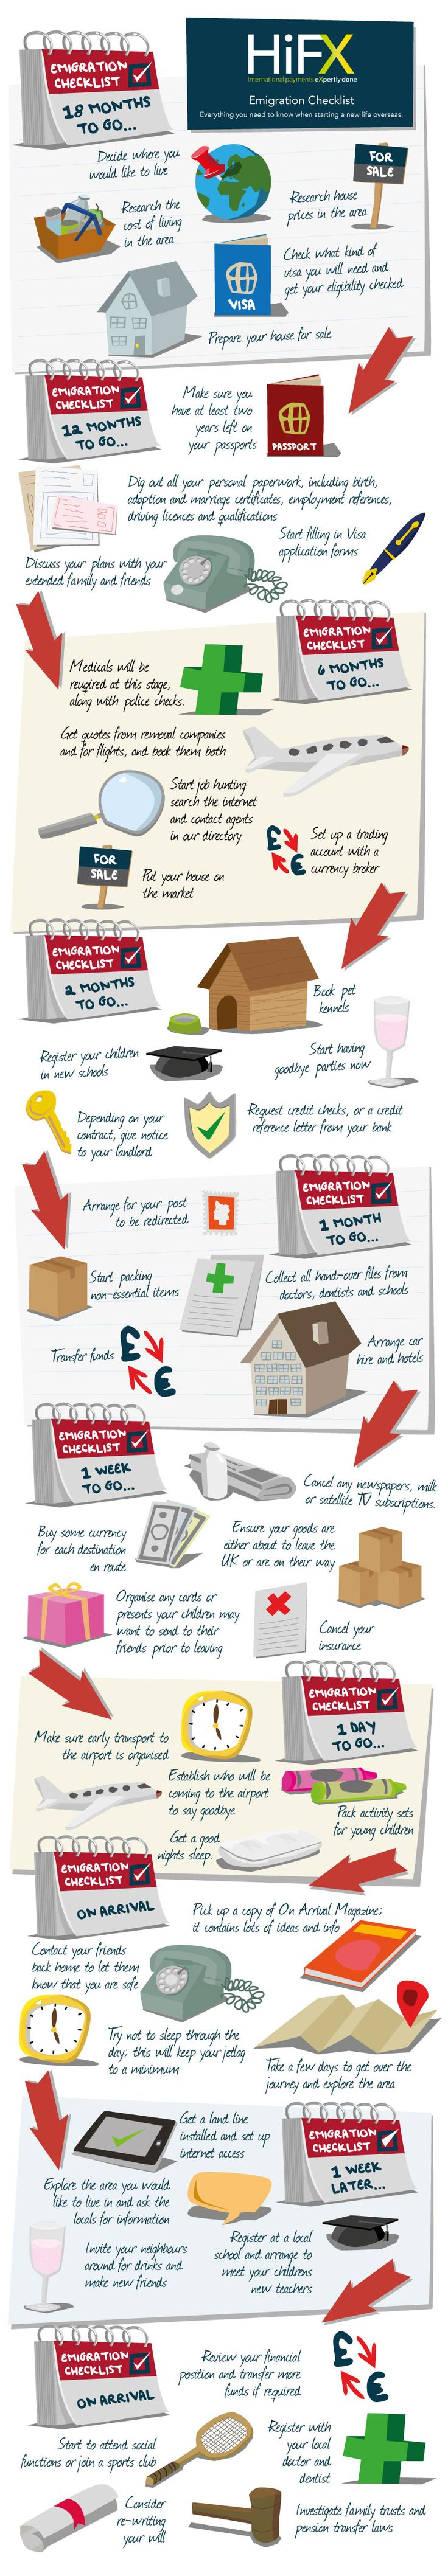 Moving in Switzerland - things you need to do when moving house in Switzerland